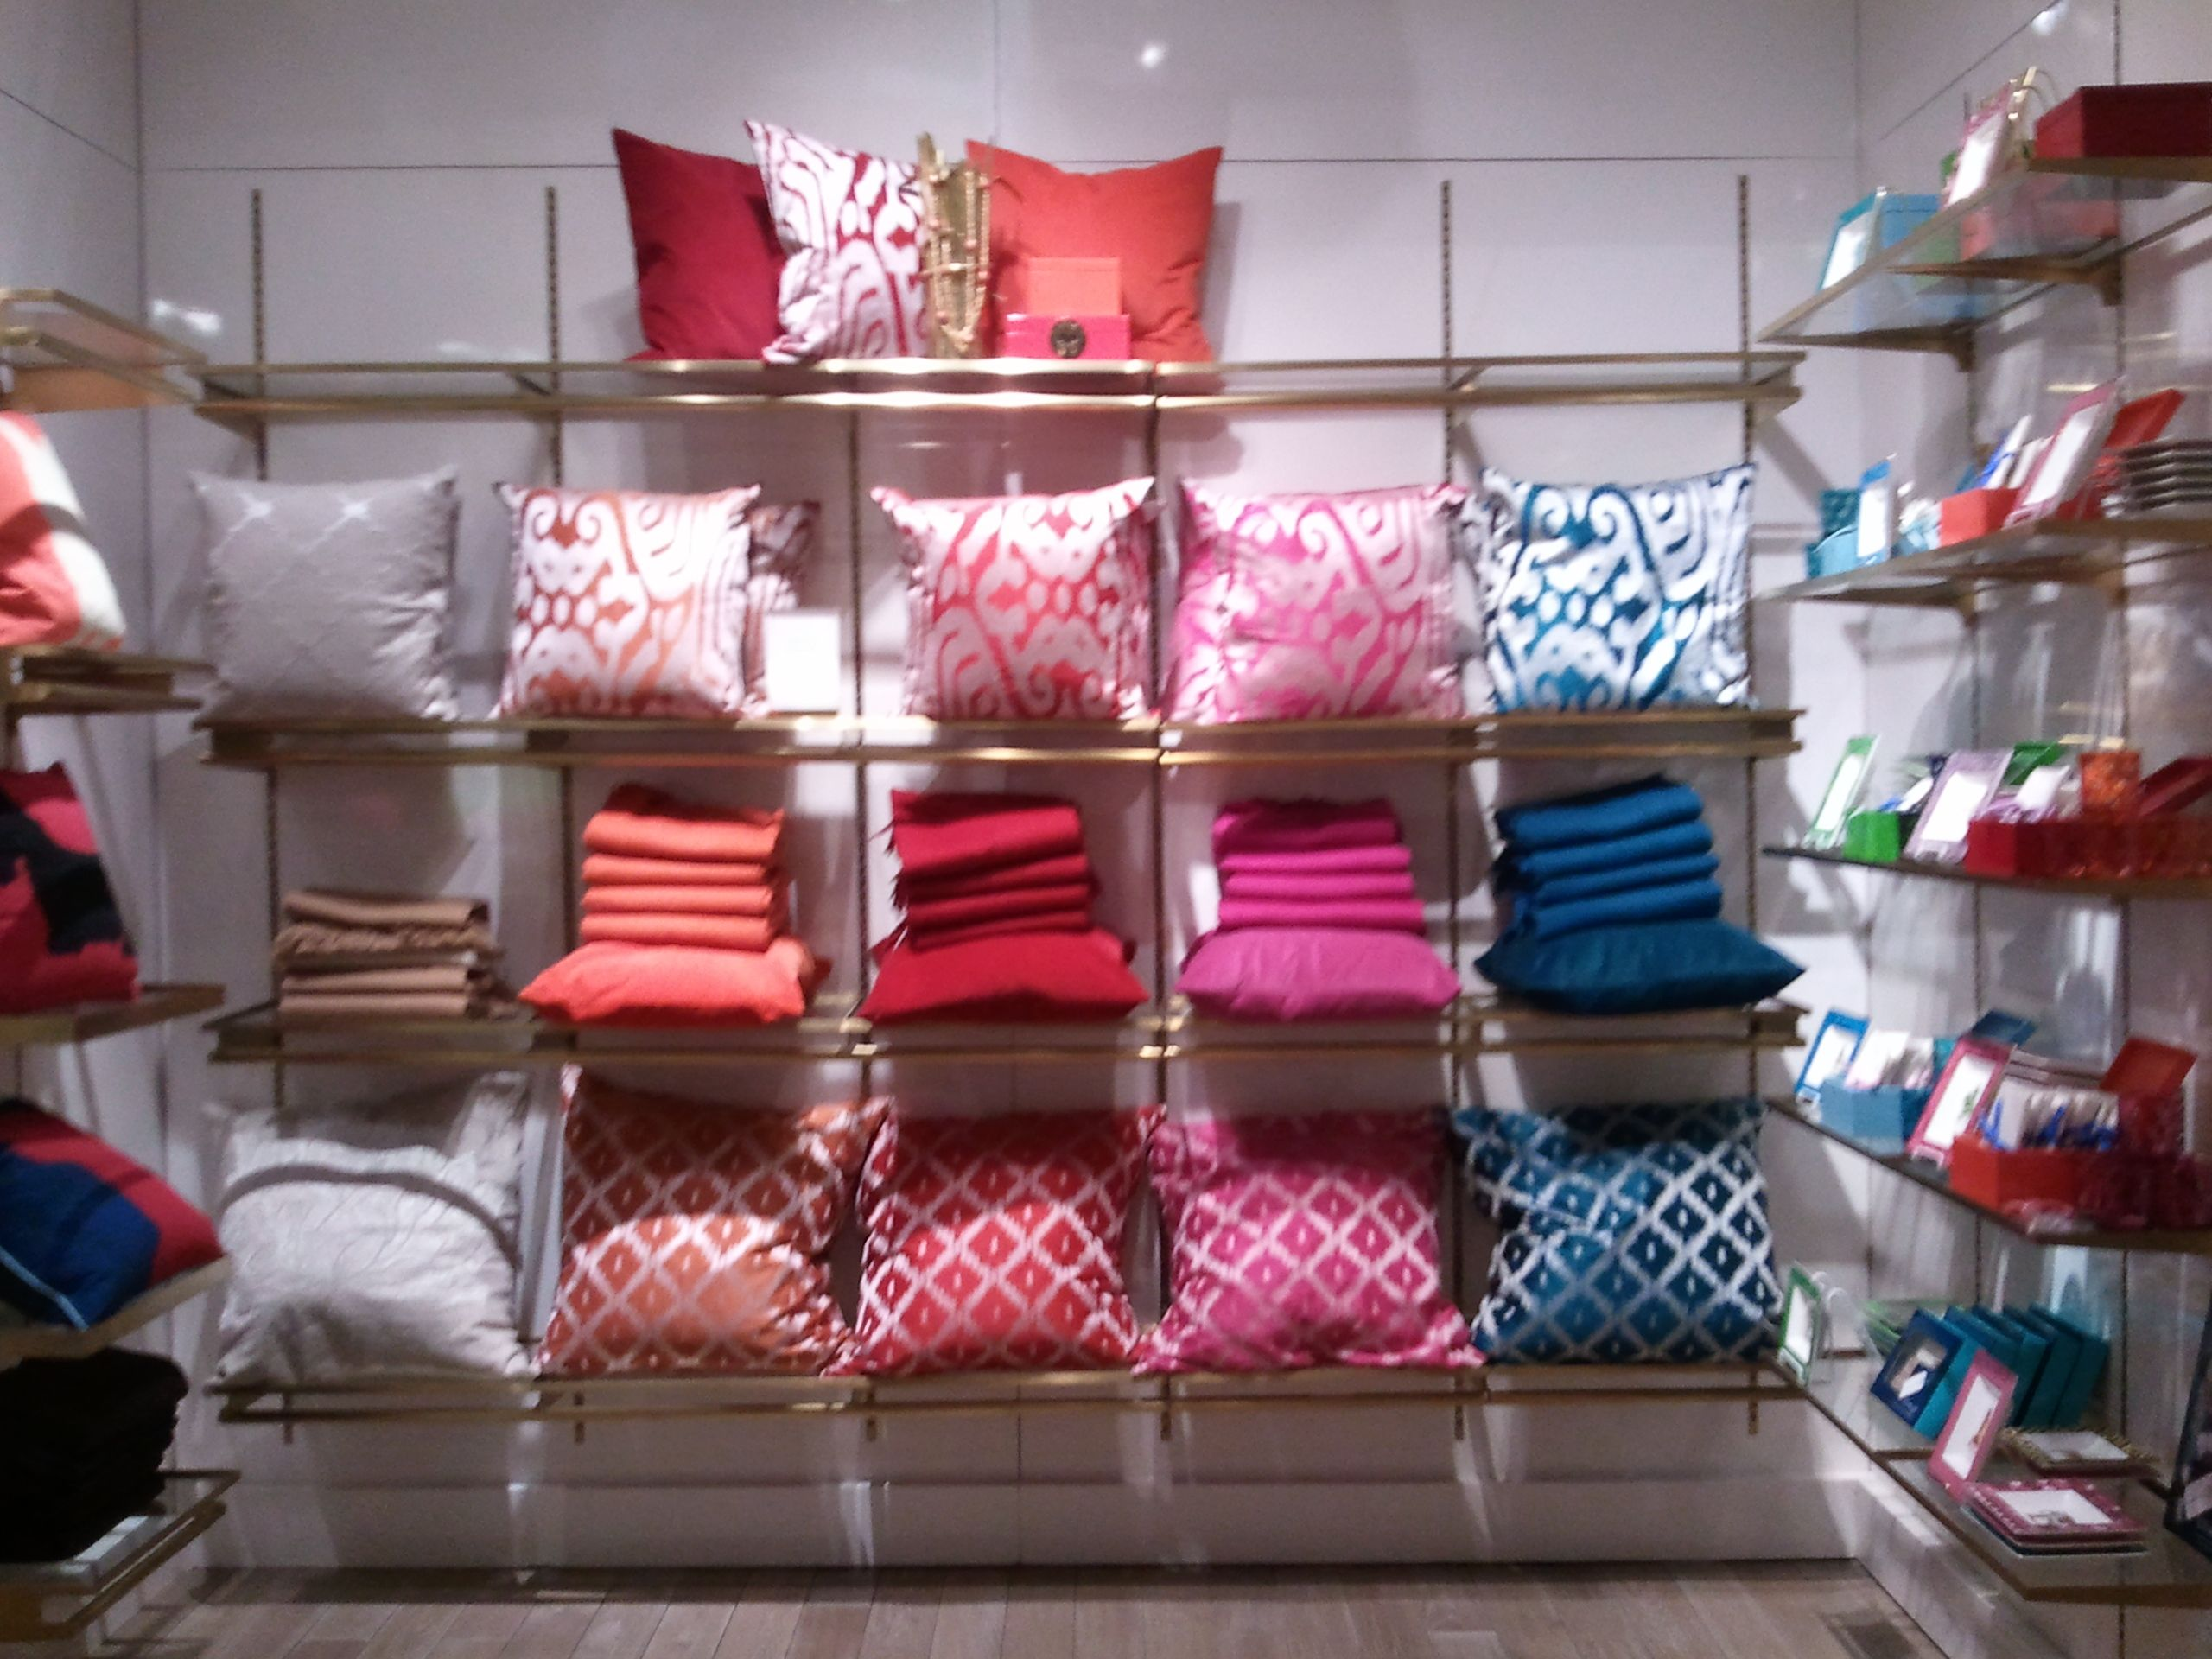 c wonder pillow display products i love store layout store displays museum store. Black Bedroom Furniture Sets. Home Design Ideas